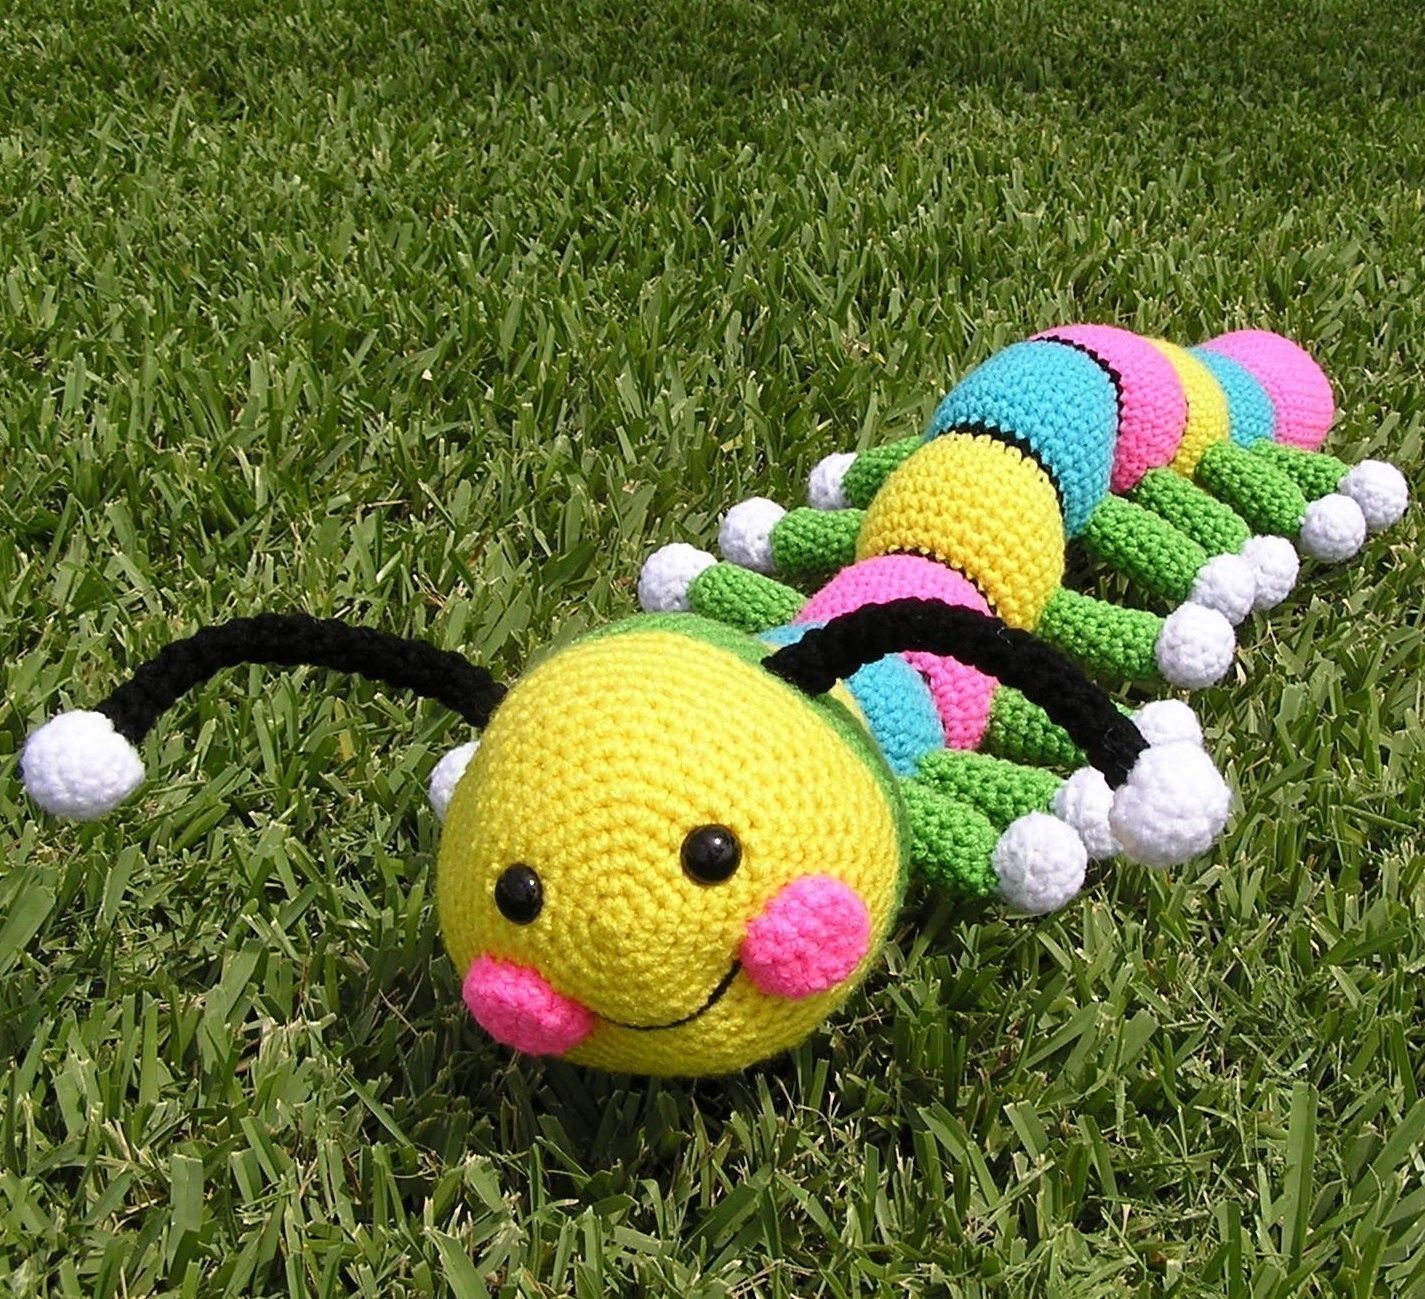 Worm amigurumi crochet pattern - Amigu World | 1299x1425